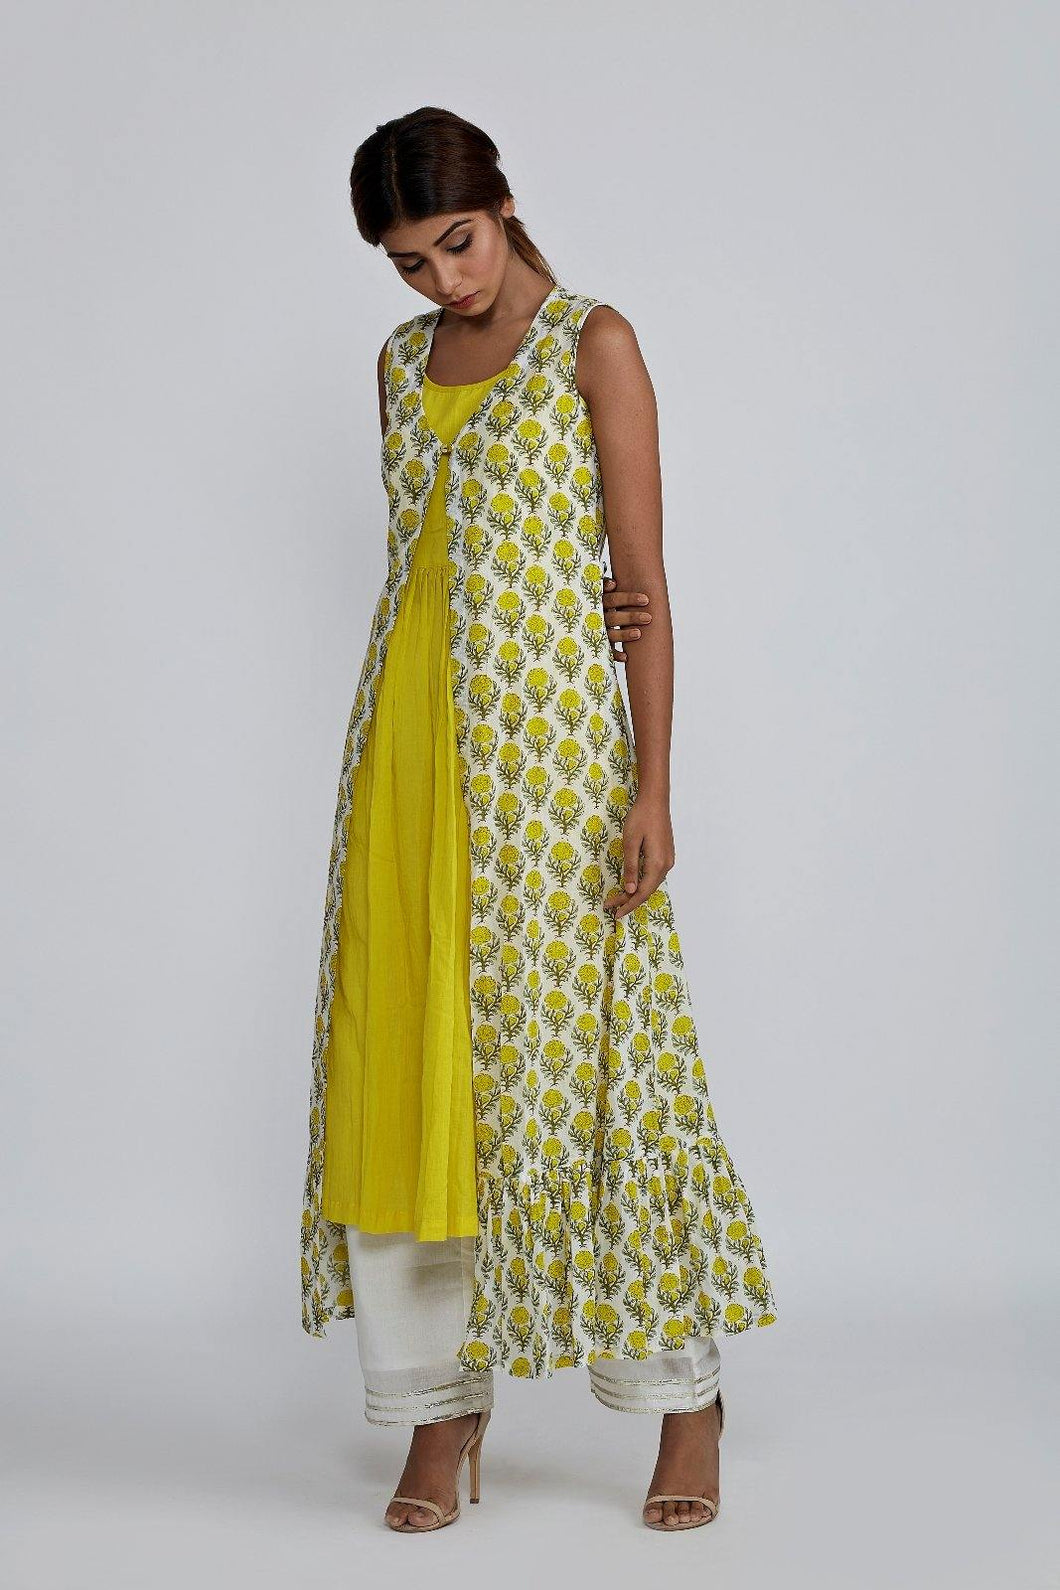 Lemon Gathered Kurta with Block Printed Cover-up Jacket